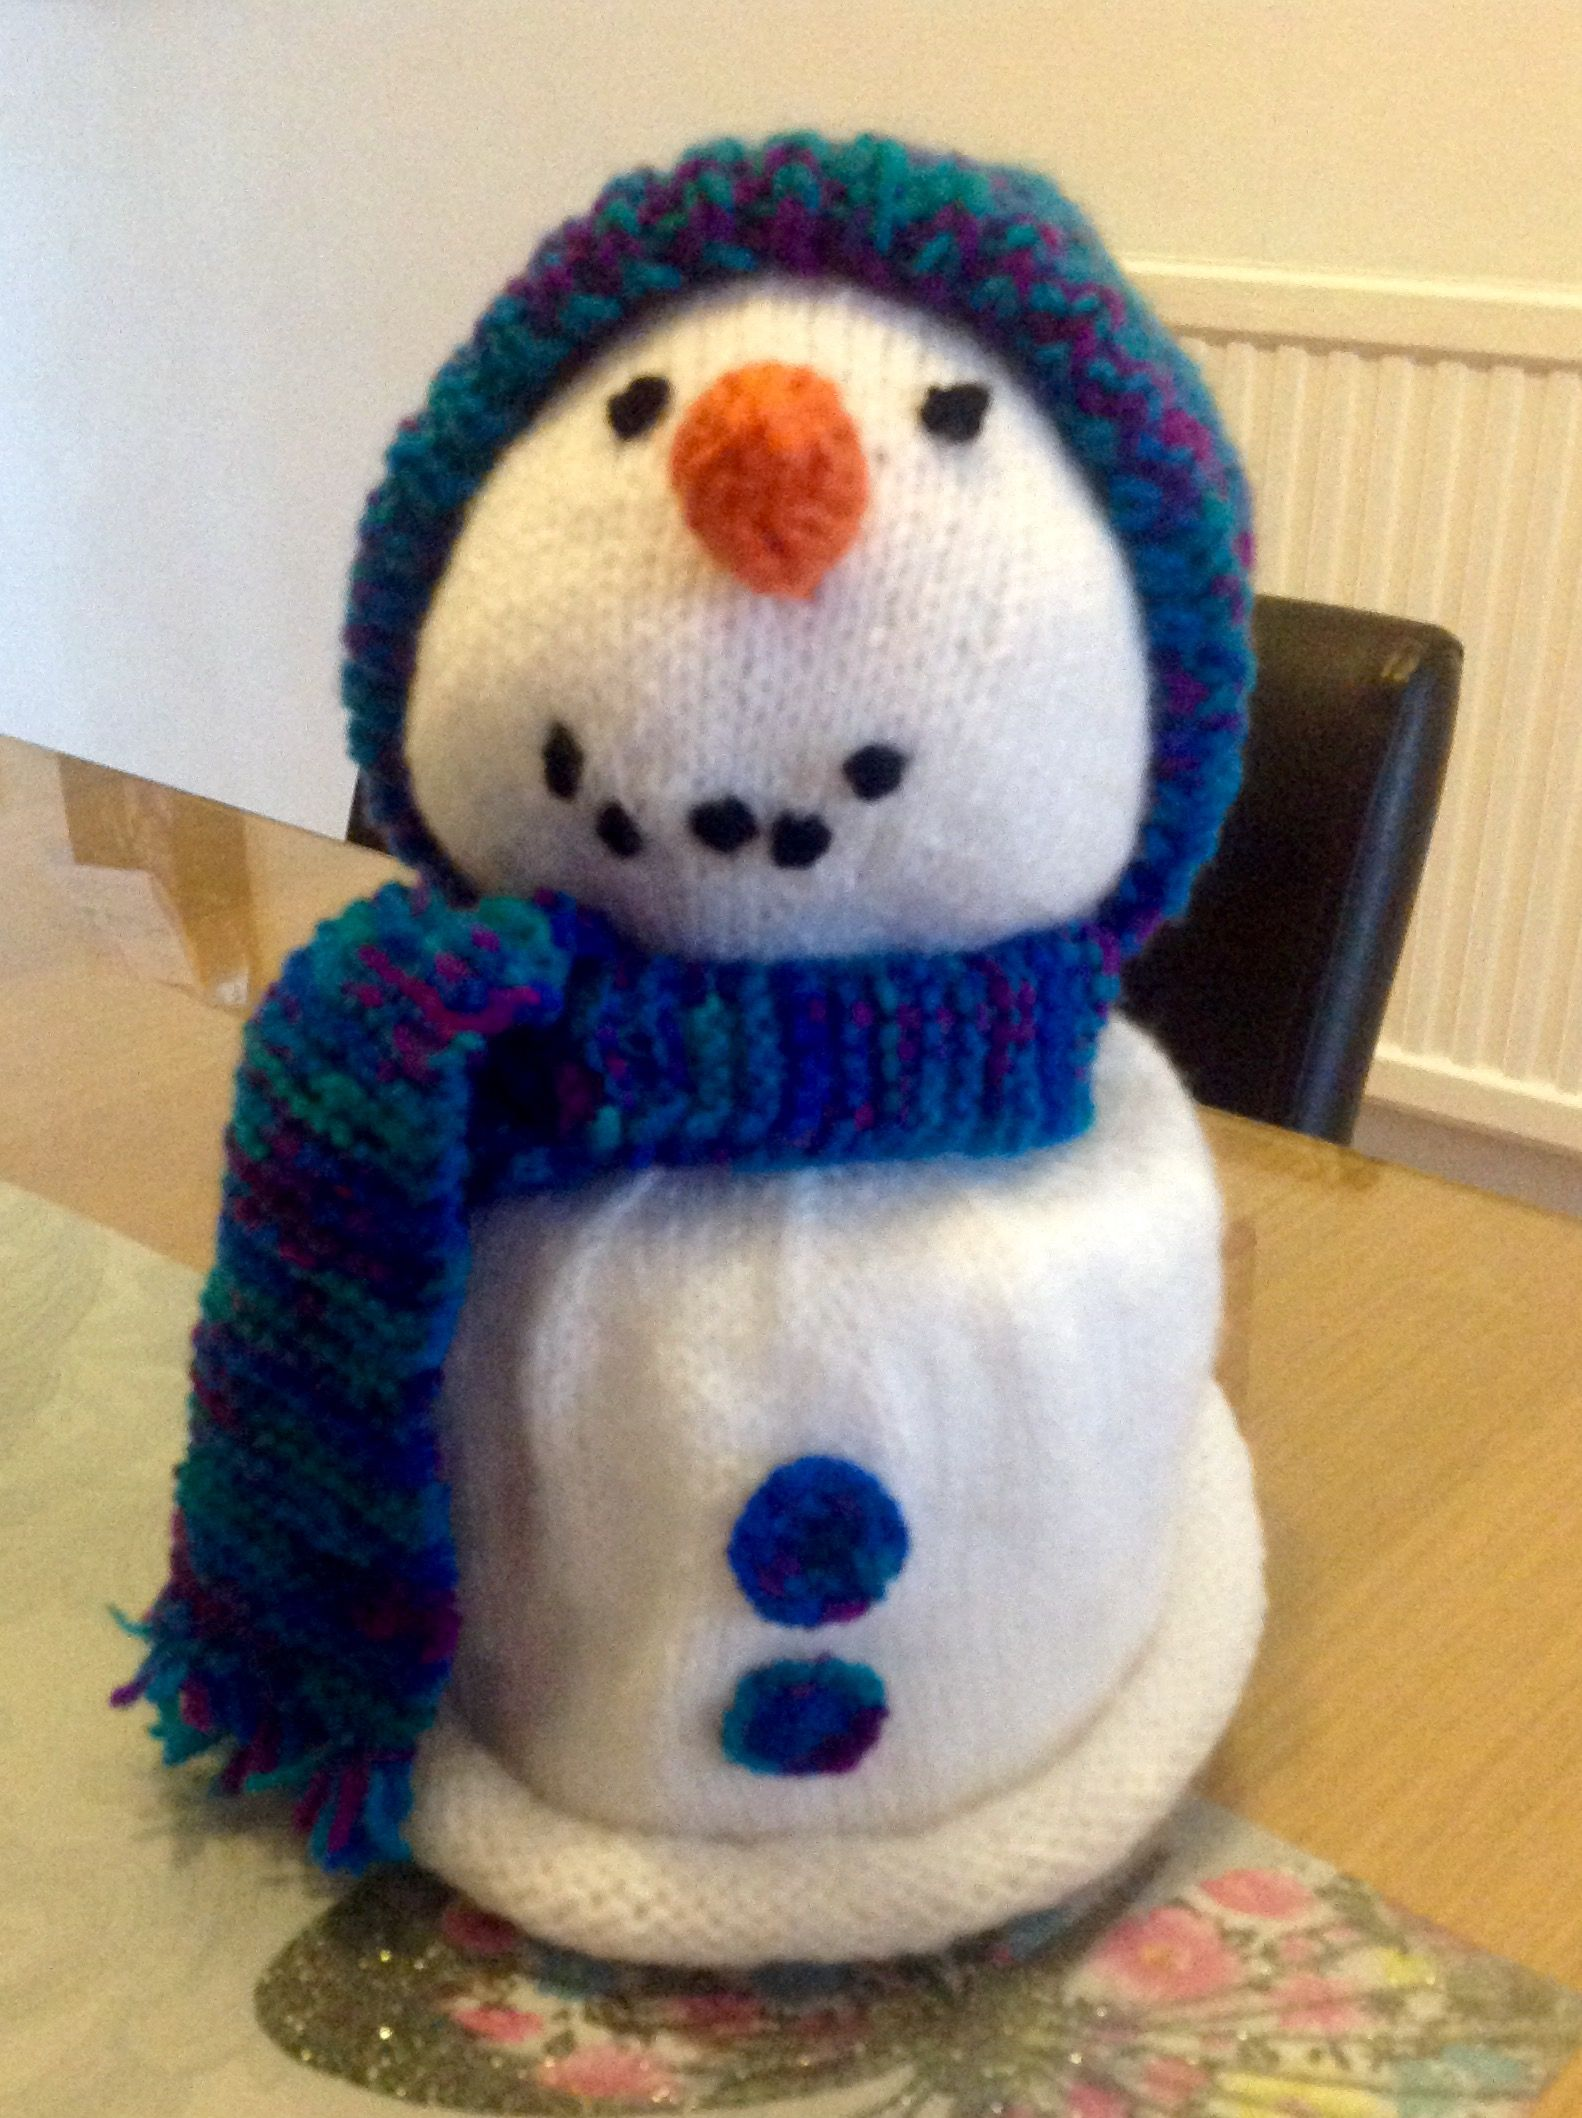 Snowman Toilet Roll Cover | Toilet, Snowman and Knit patterns